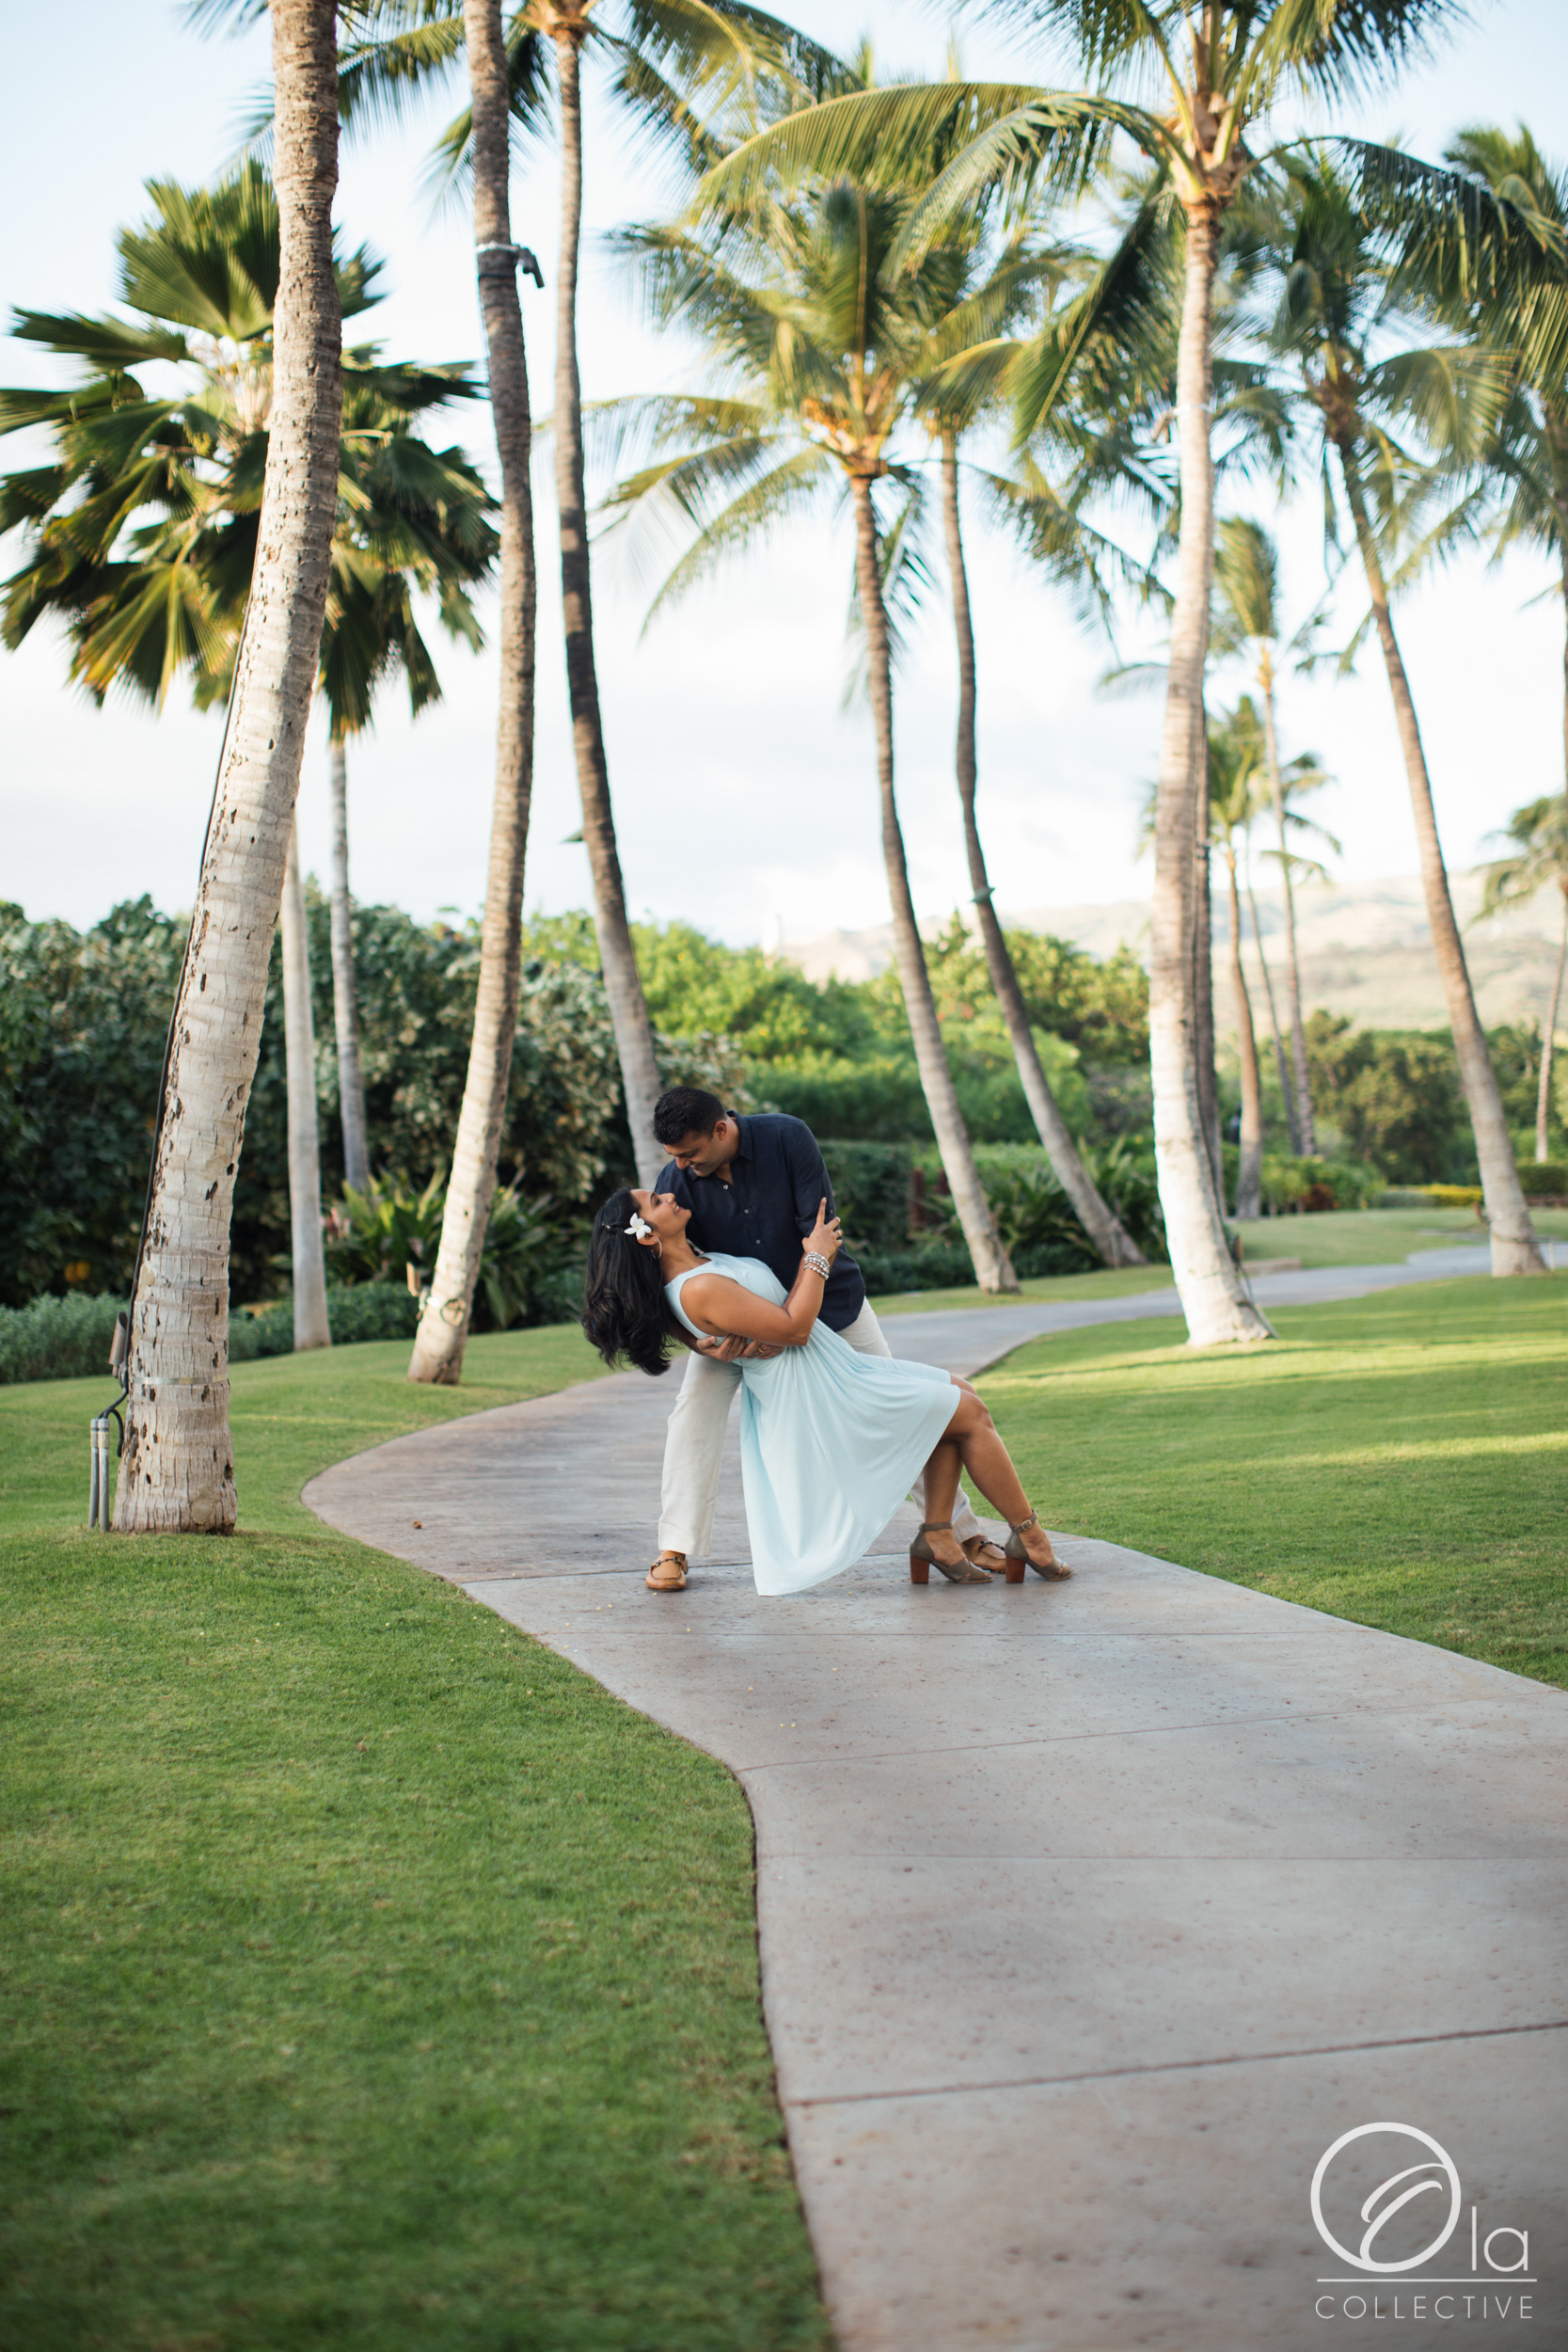 Ko-Olina-Couples-Photographer-Ola-Collective-3.jpg